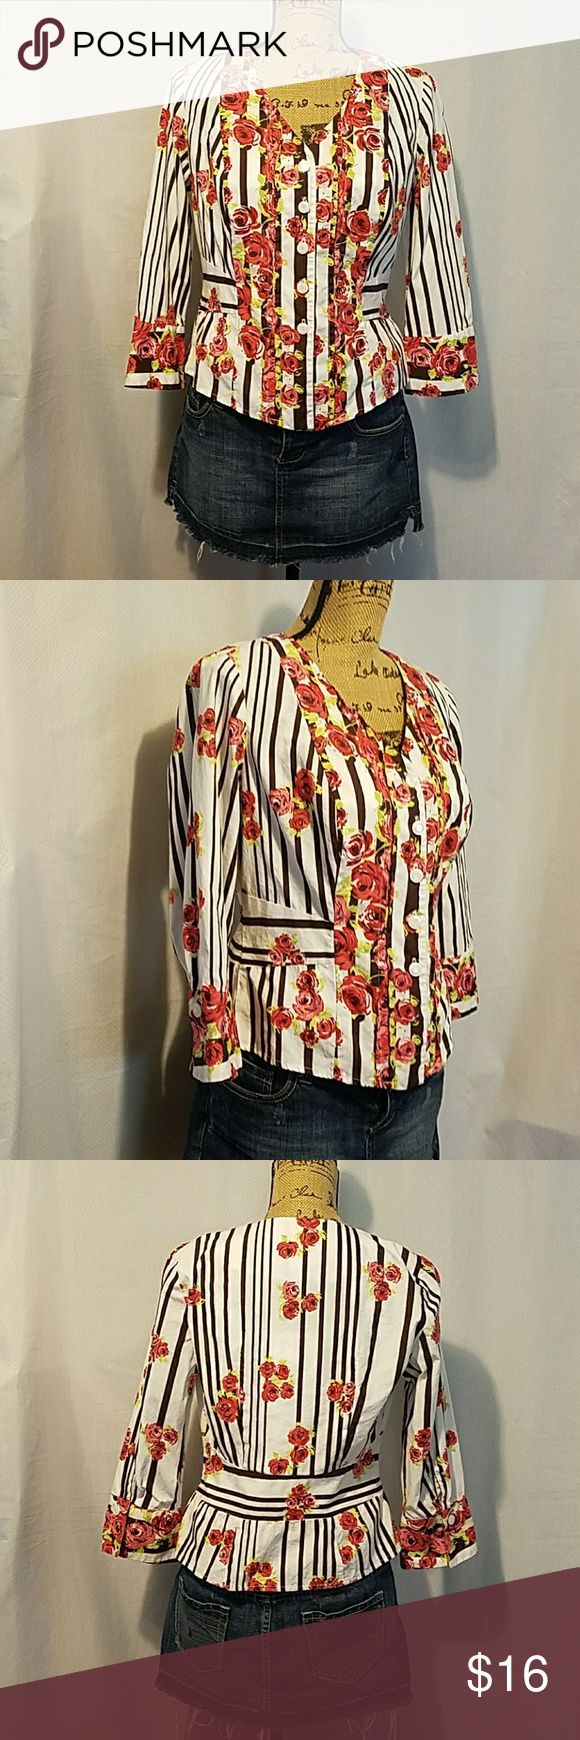 """Andrea Fisher Designs NYC 3/4 top. Andrea fisher designs nyc 3/4 top.Size medium. Shoulder to bottom 21"""" long,armpit to armpit 18"""" across.waist 15"""" laying flat.Color white,brown,mint green and pink rose flower.Used sign of wear the cloth a little bit fading.Good condition. ANDREA FISHER DESIGN NYC Tops Blouses"""